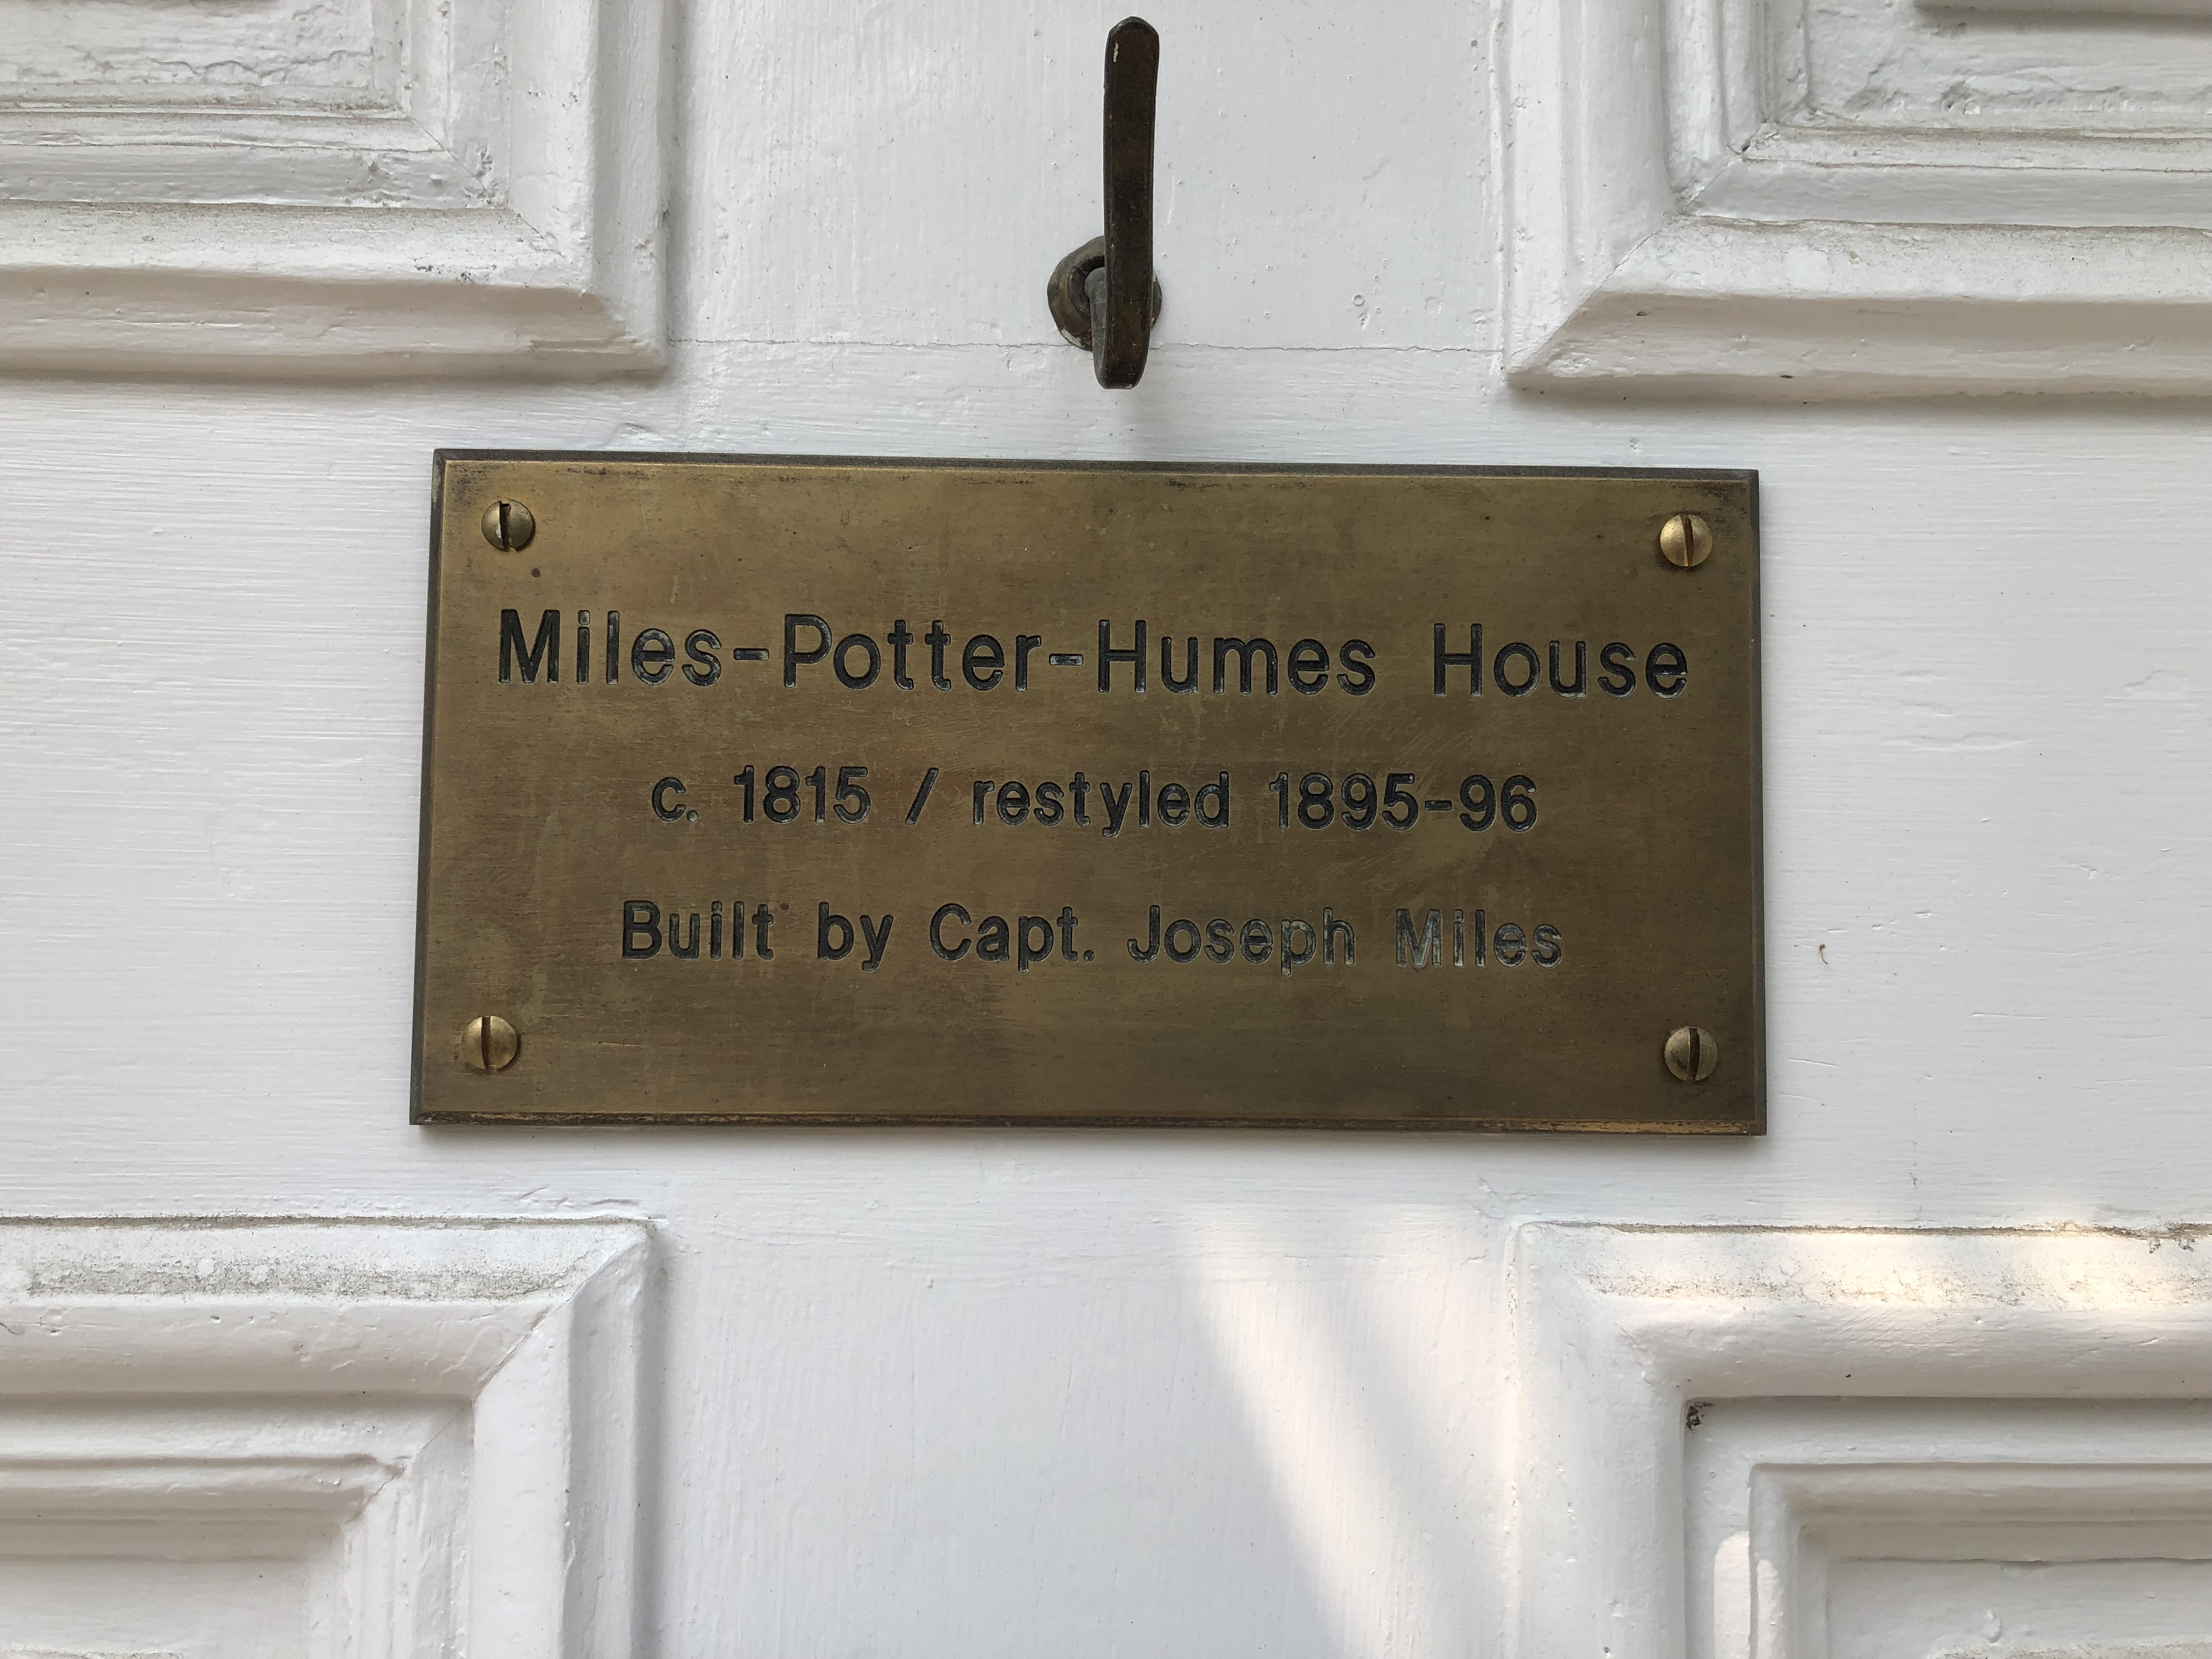 Miles-Potter-Humes House Marker